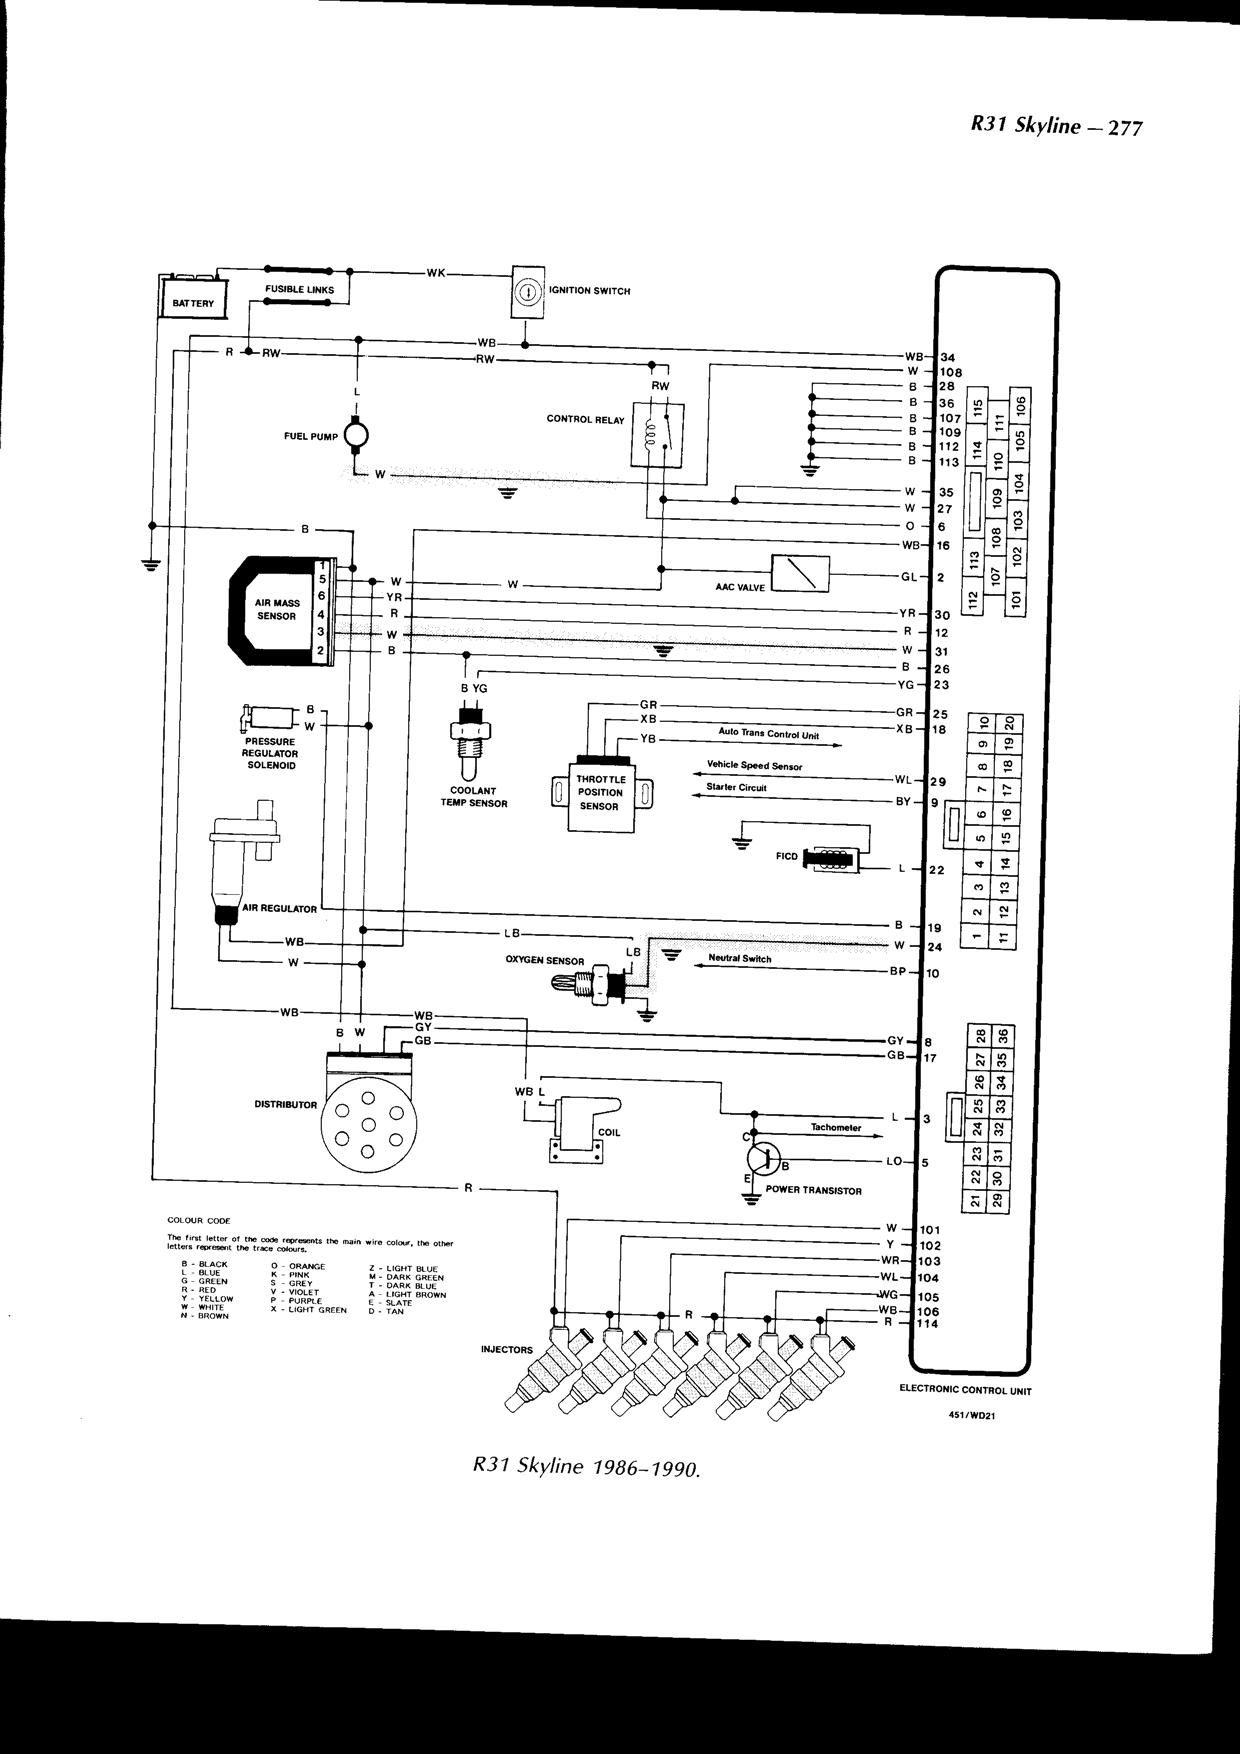 nissan 1400 electrical wiring diagram nissan electrical wiring nissan 1400 wiring diagram free download [ 1240 x 1754 Pixel ]